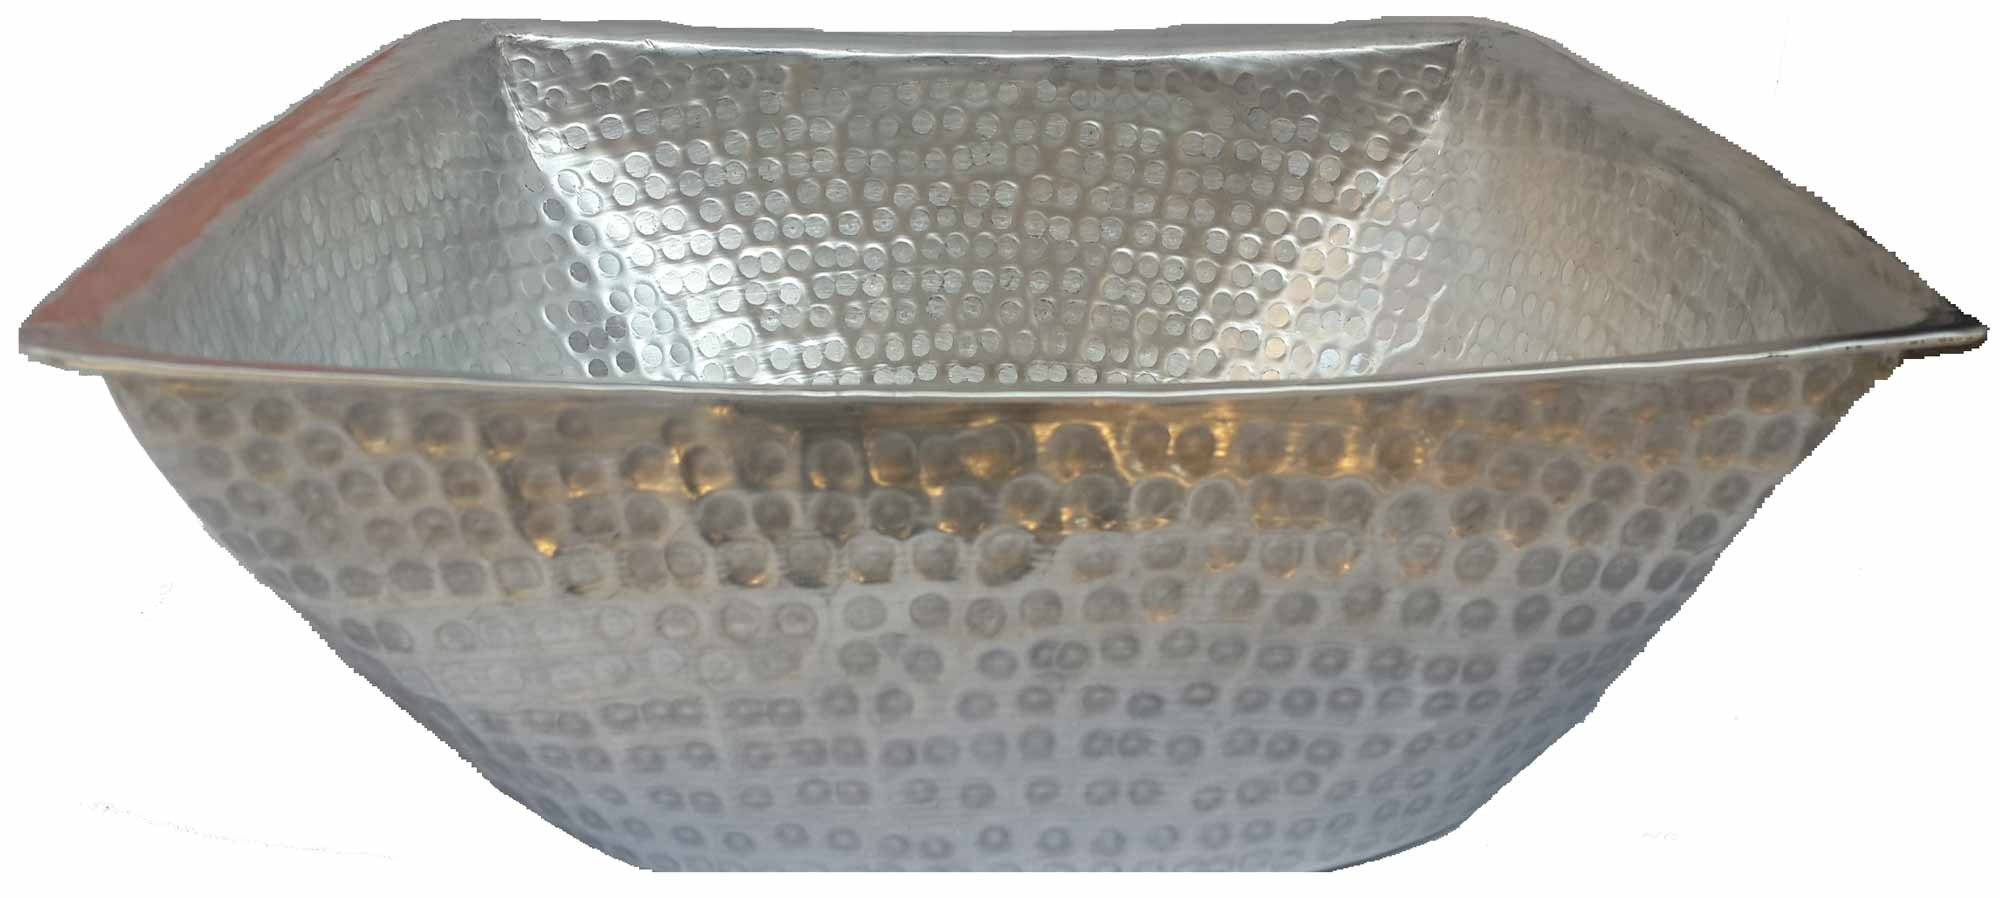 Egypt gift shops Hand Hammered Square Light Weight Silver Foot Wash Massage Spa Cleansing Bathtub Basin Beauty Salon Pedicure Relax Skin Toes Care by Egypt gift shops (Image #2)